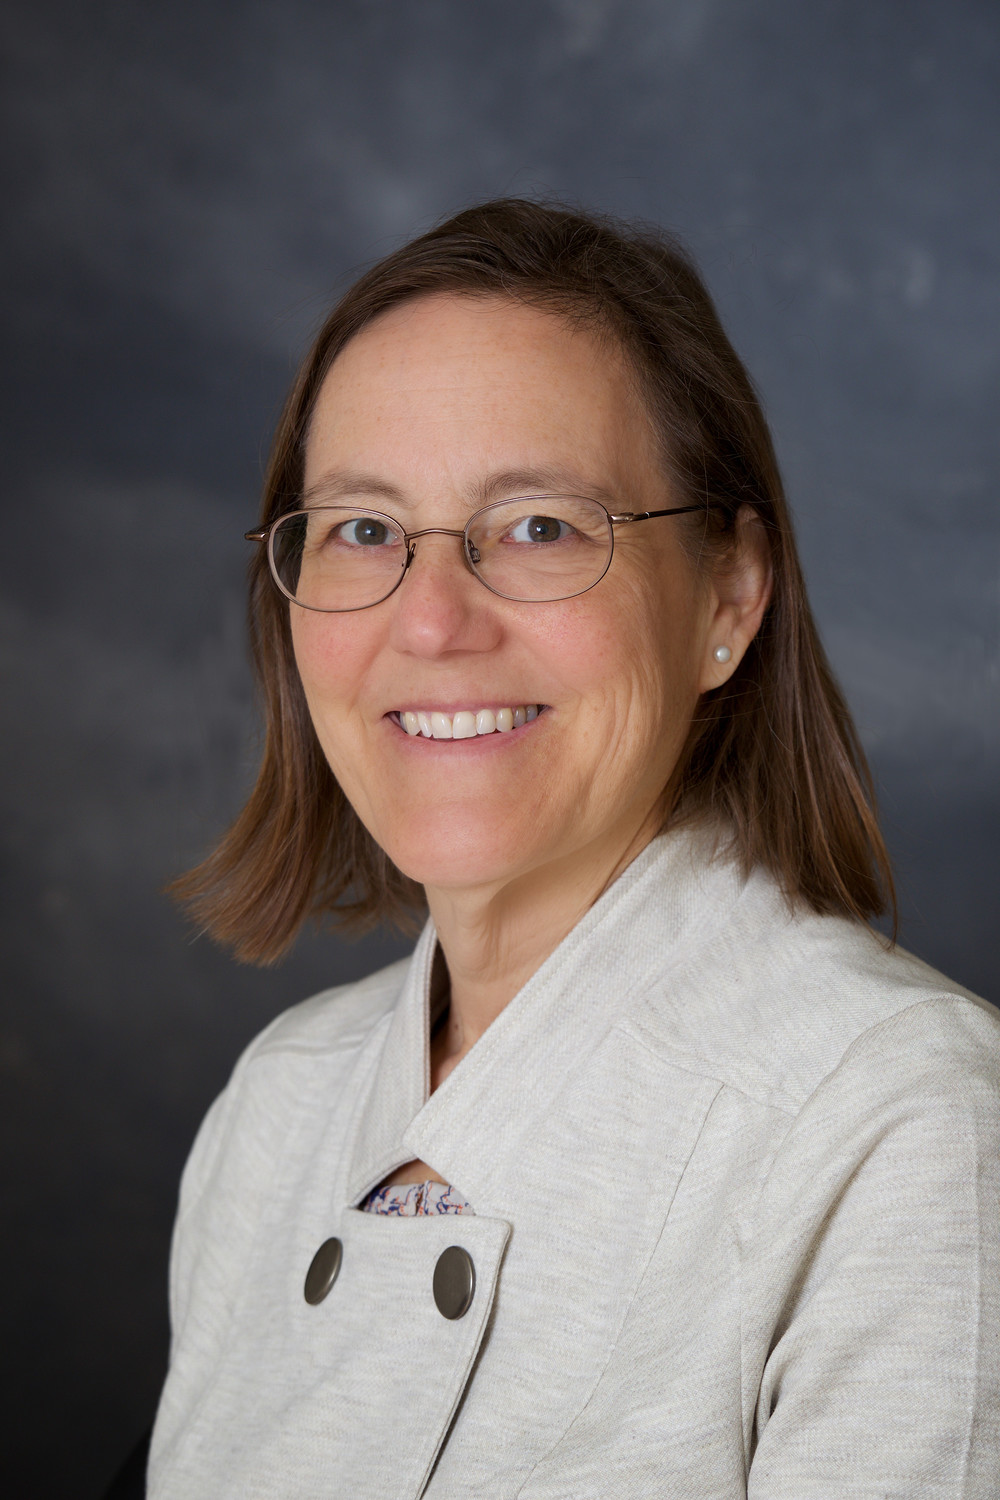 Sarah Fessler, MD, of Riverside, was awarded the Rhode Island Health Center Association's (RIHCA) Clinical Leadership Award